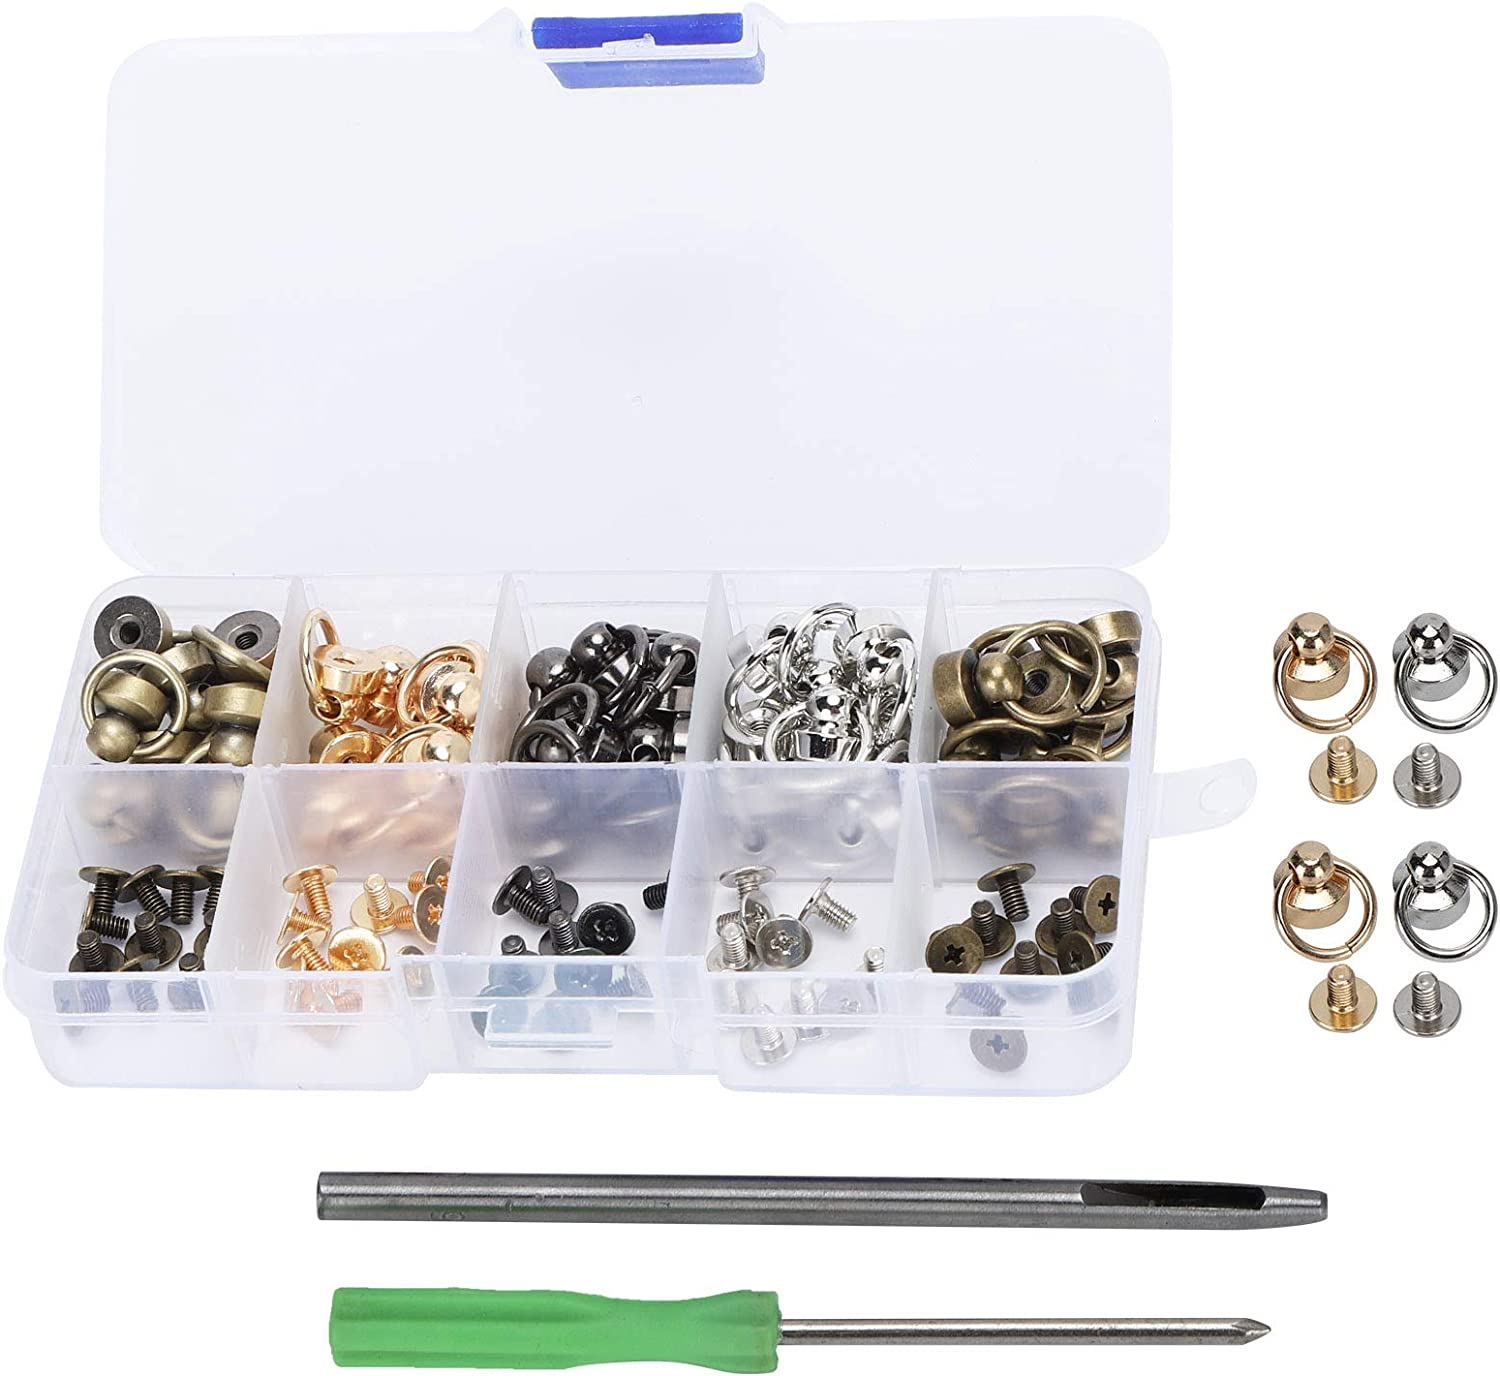 Rivets Set Ball Stud Rivet Pull Ring Mobile Cas Bargain Nail Phone Challenge the lowest price of Japan ☆ Screw